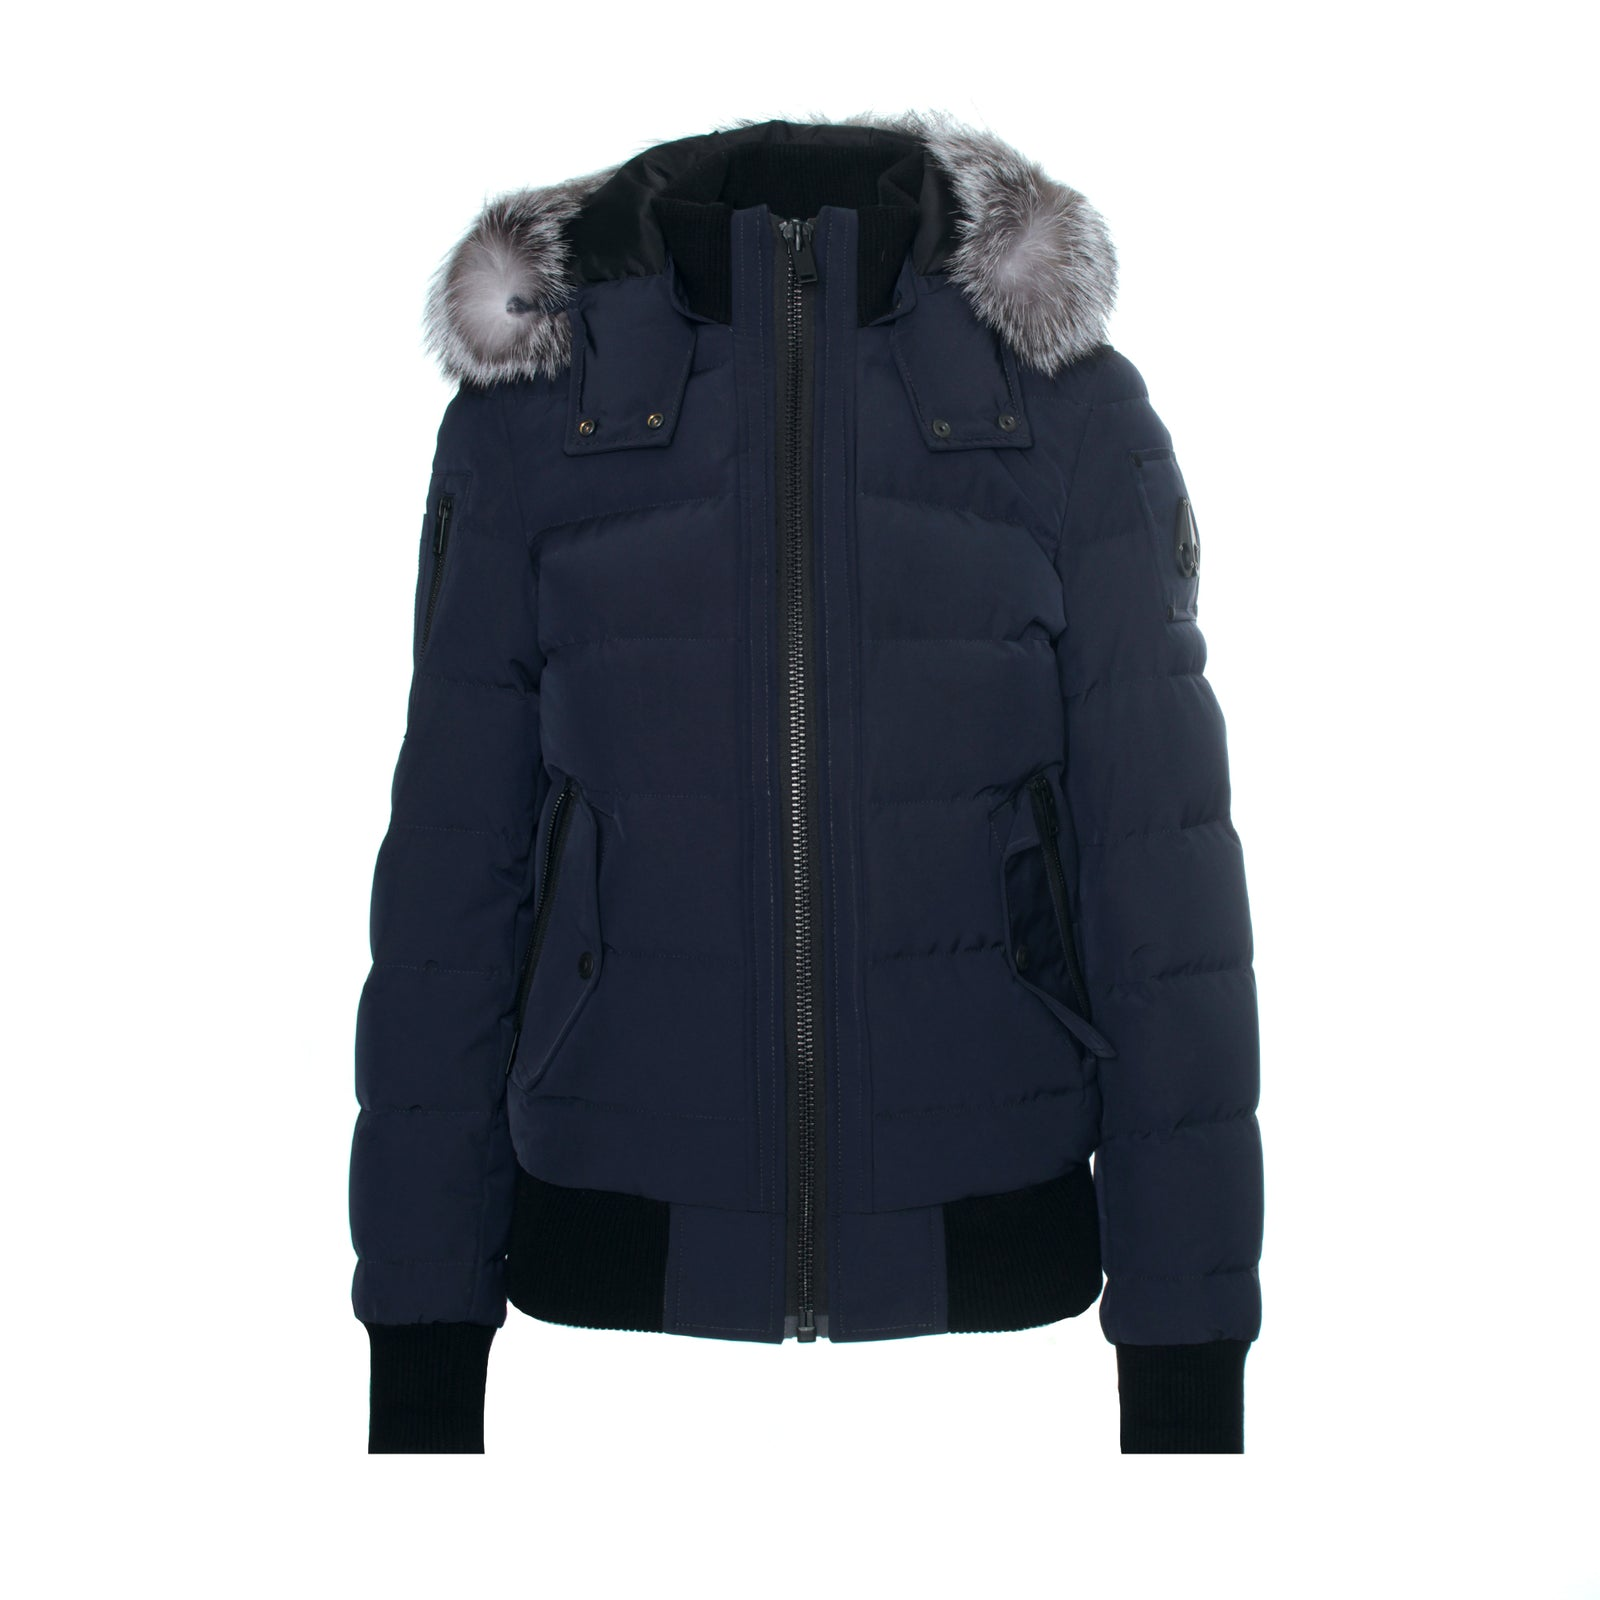 Moose Knuckles Ladriere Women's  Bomber Jacket Navy